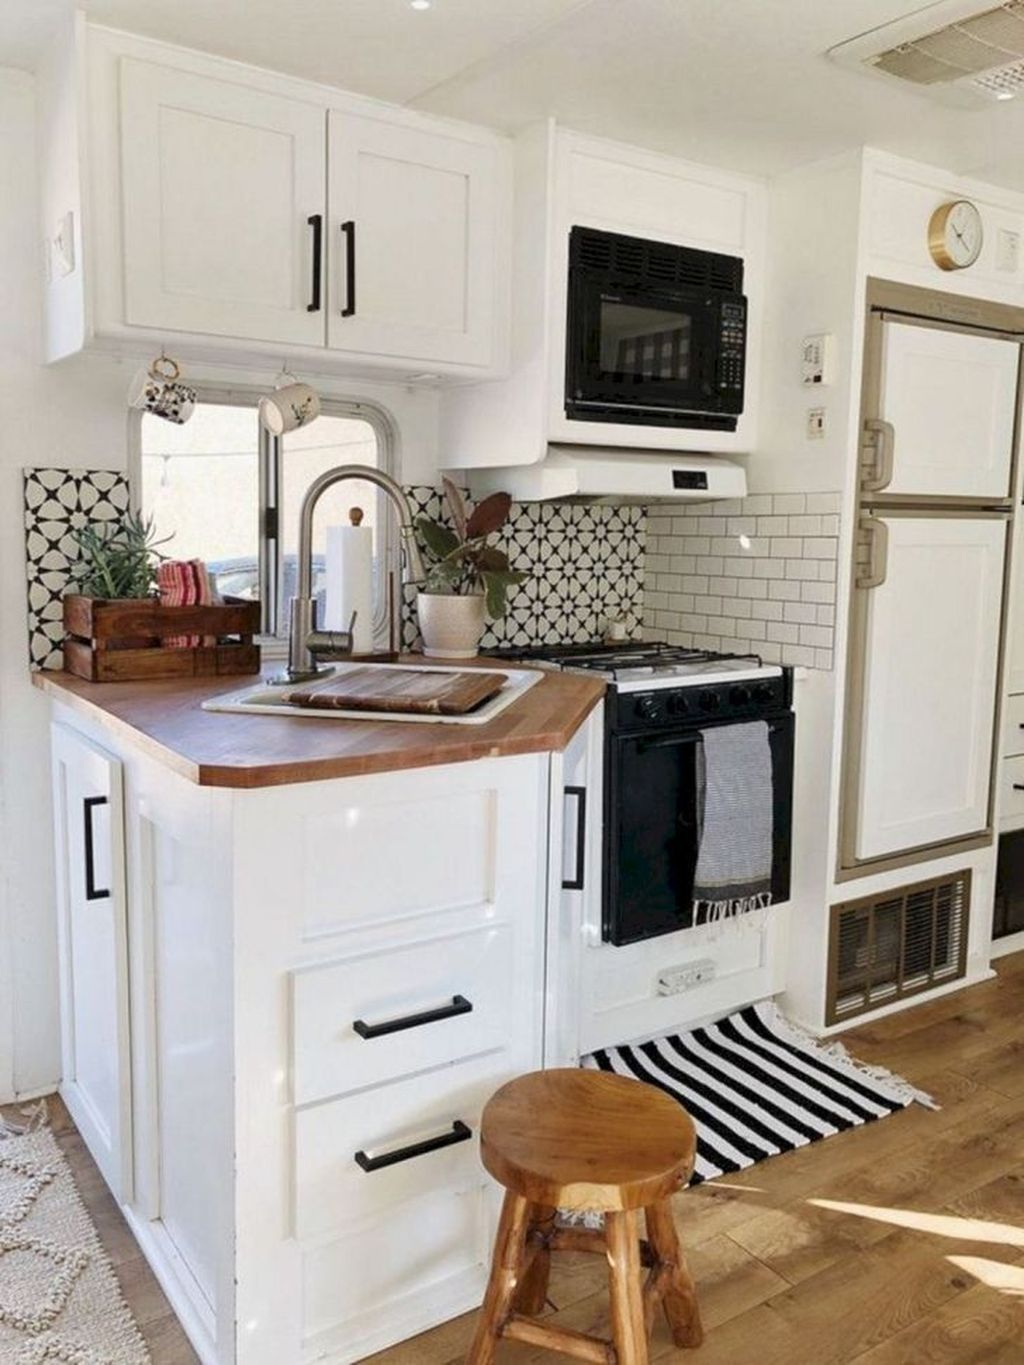 Relaxing Rv Kitchen Design Ideas For More Comfortable Cooking During The Holiday 11